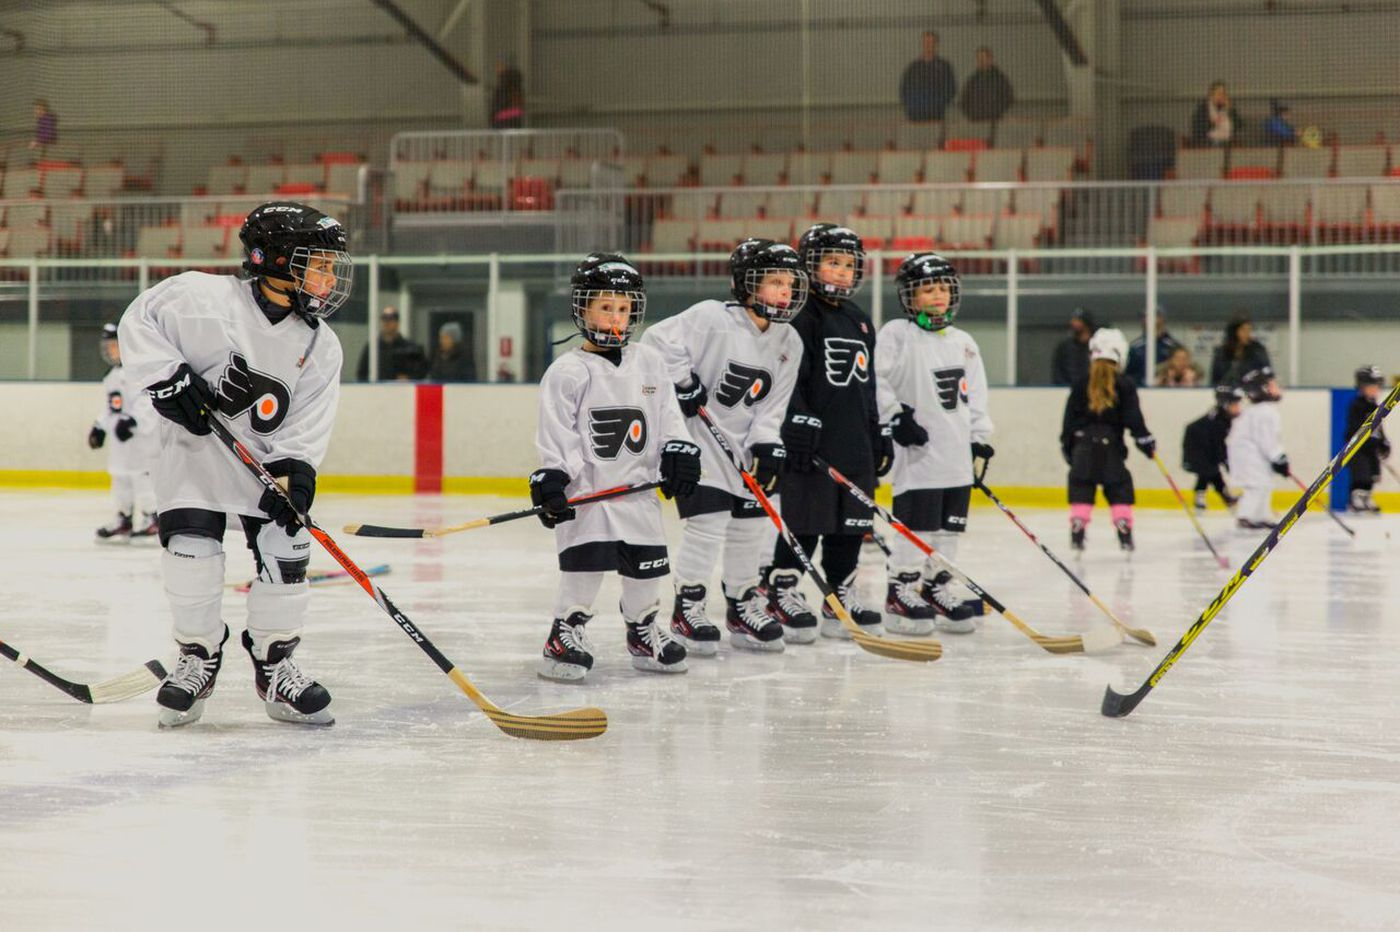 Flyers expand youth development camps in Philadelphia area